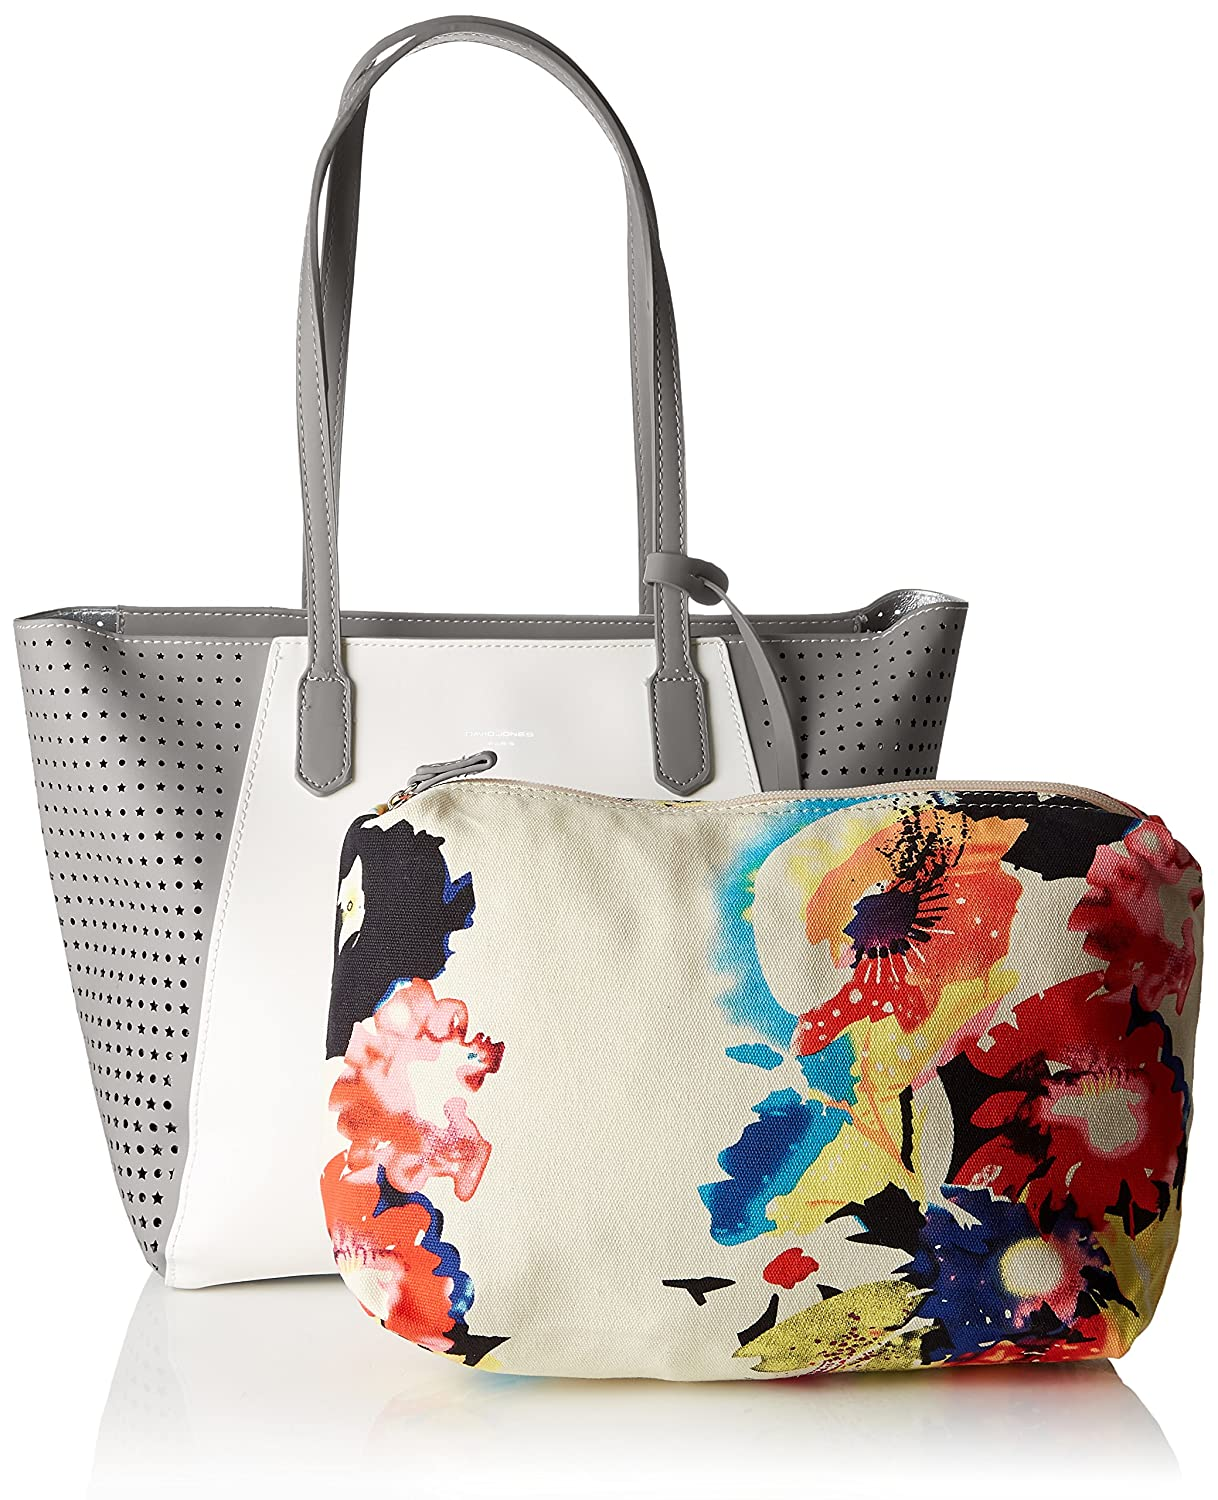 Damen Cm3757 Tote David Jones